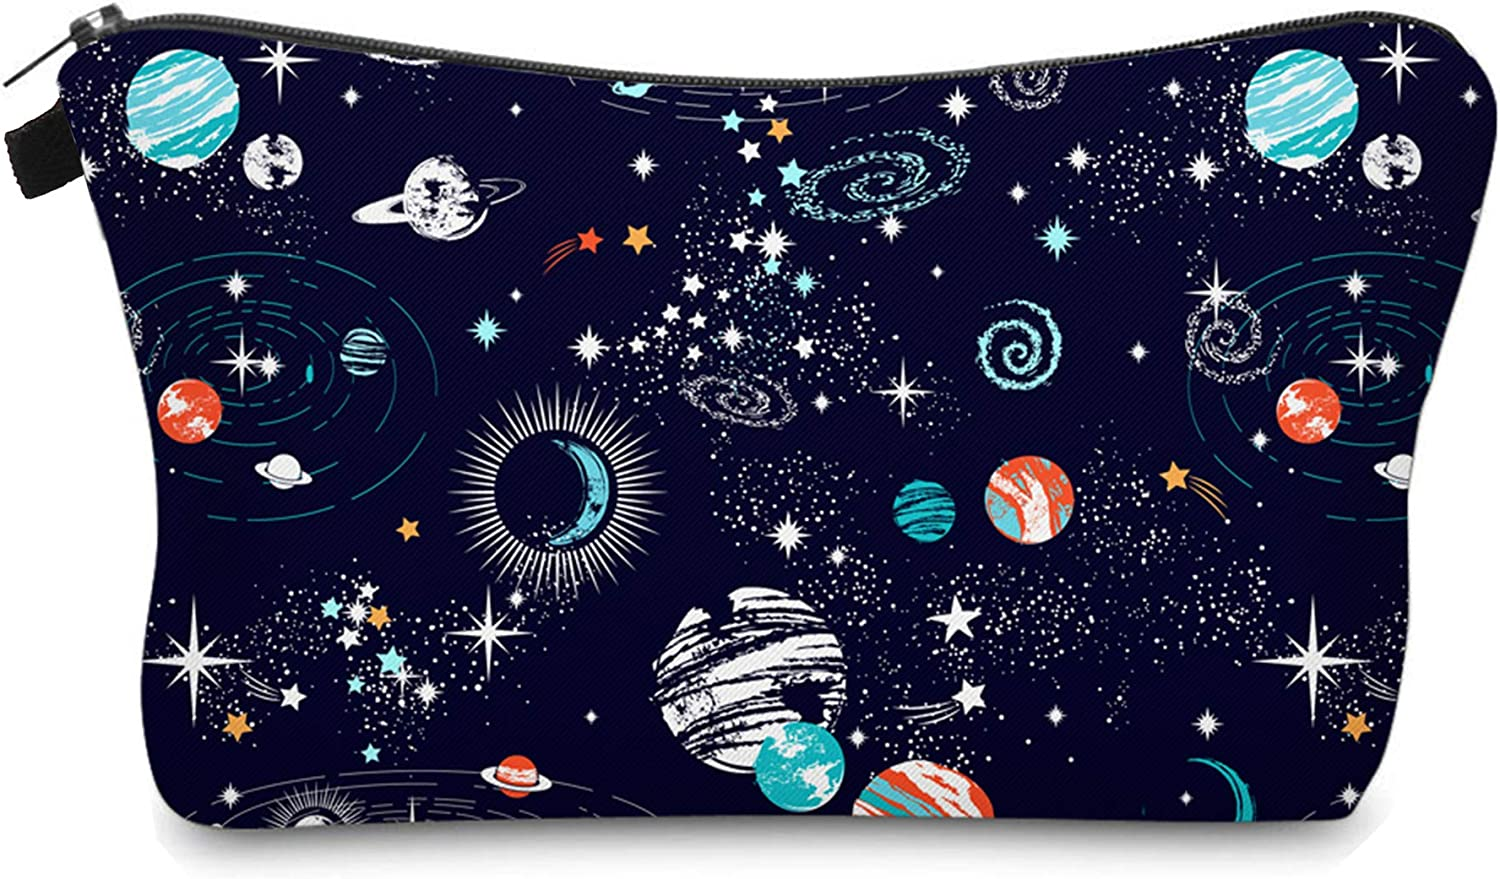 Cute Travel Makeup Bag Cosmetic Bag Small Pouch Gift for Women (Space)